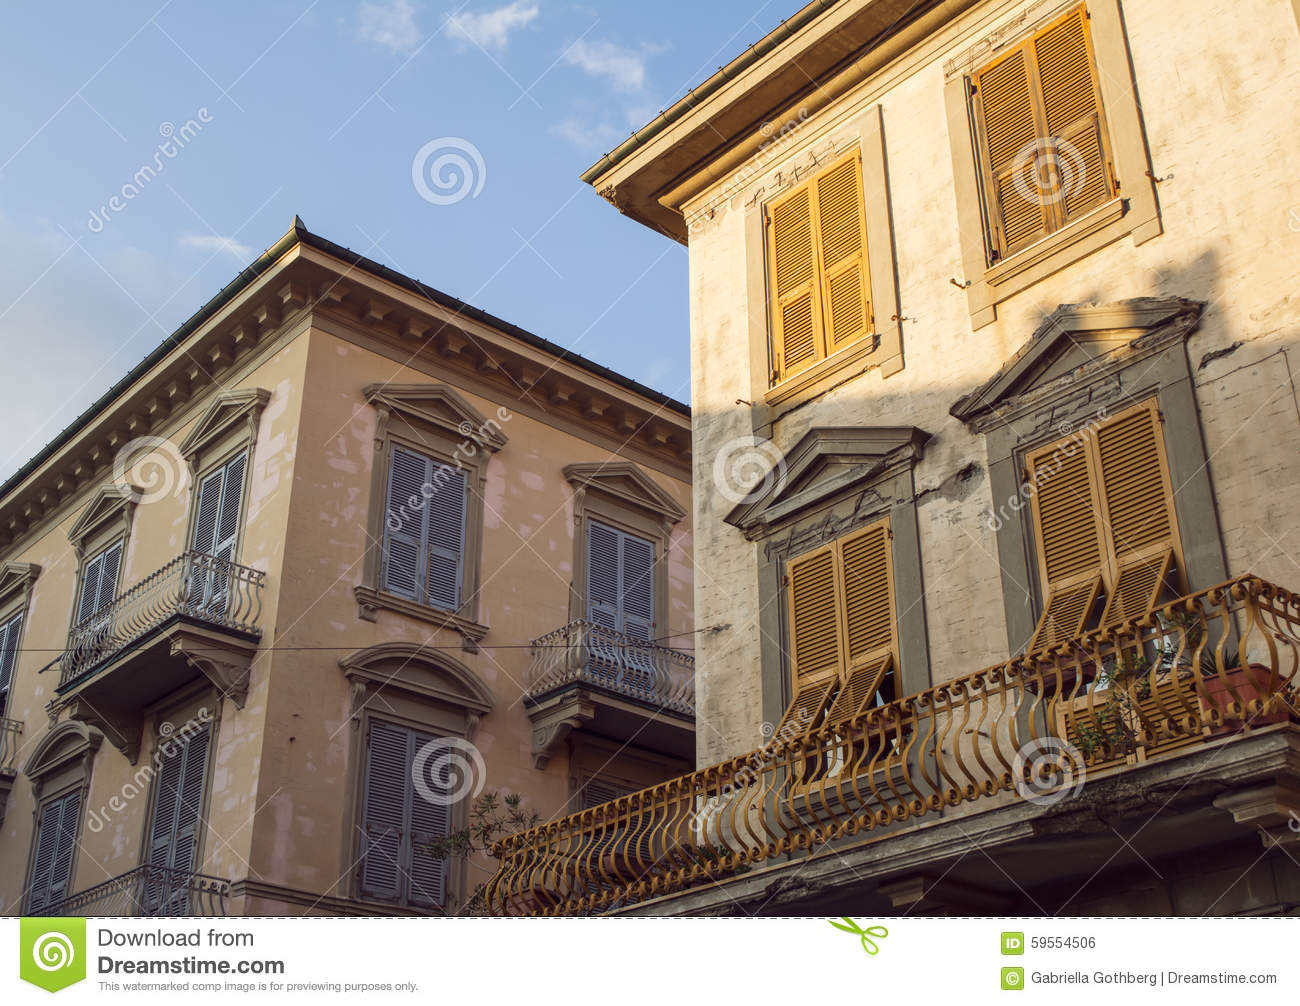 Beautiful, old sunlit house facades in Levanto, Italy.